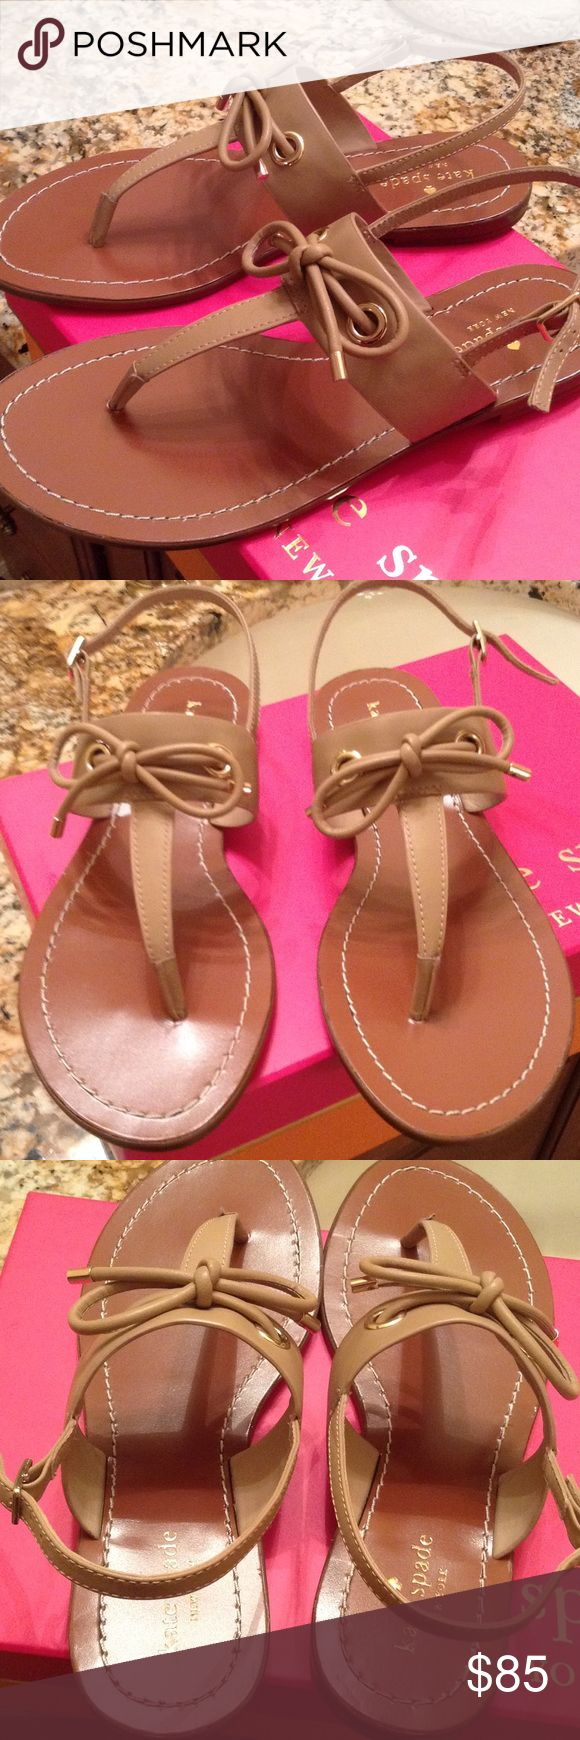 Brand new authentic Kate spade sandals With box Kate spade neutral color sandals with bows kate spade Shoes Sandals